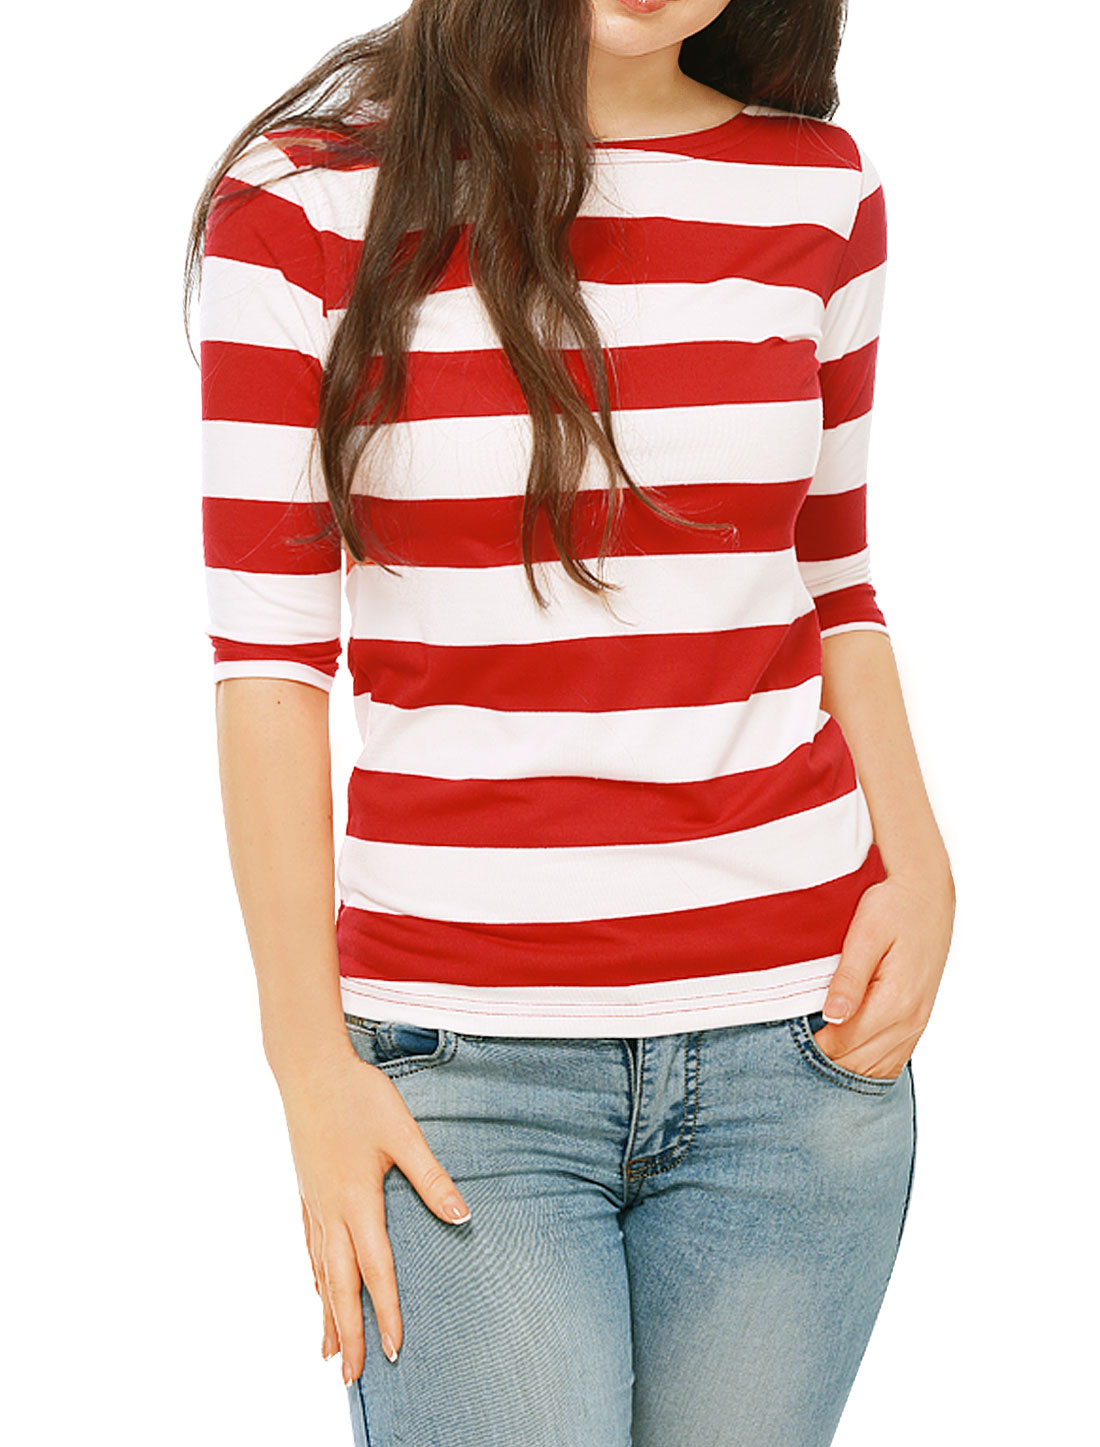 Allegra K Ladies Elbow Sleeves Boat Neck Bold Stripes Tee Shirt Red L